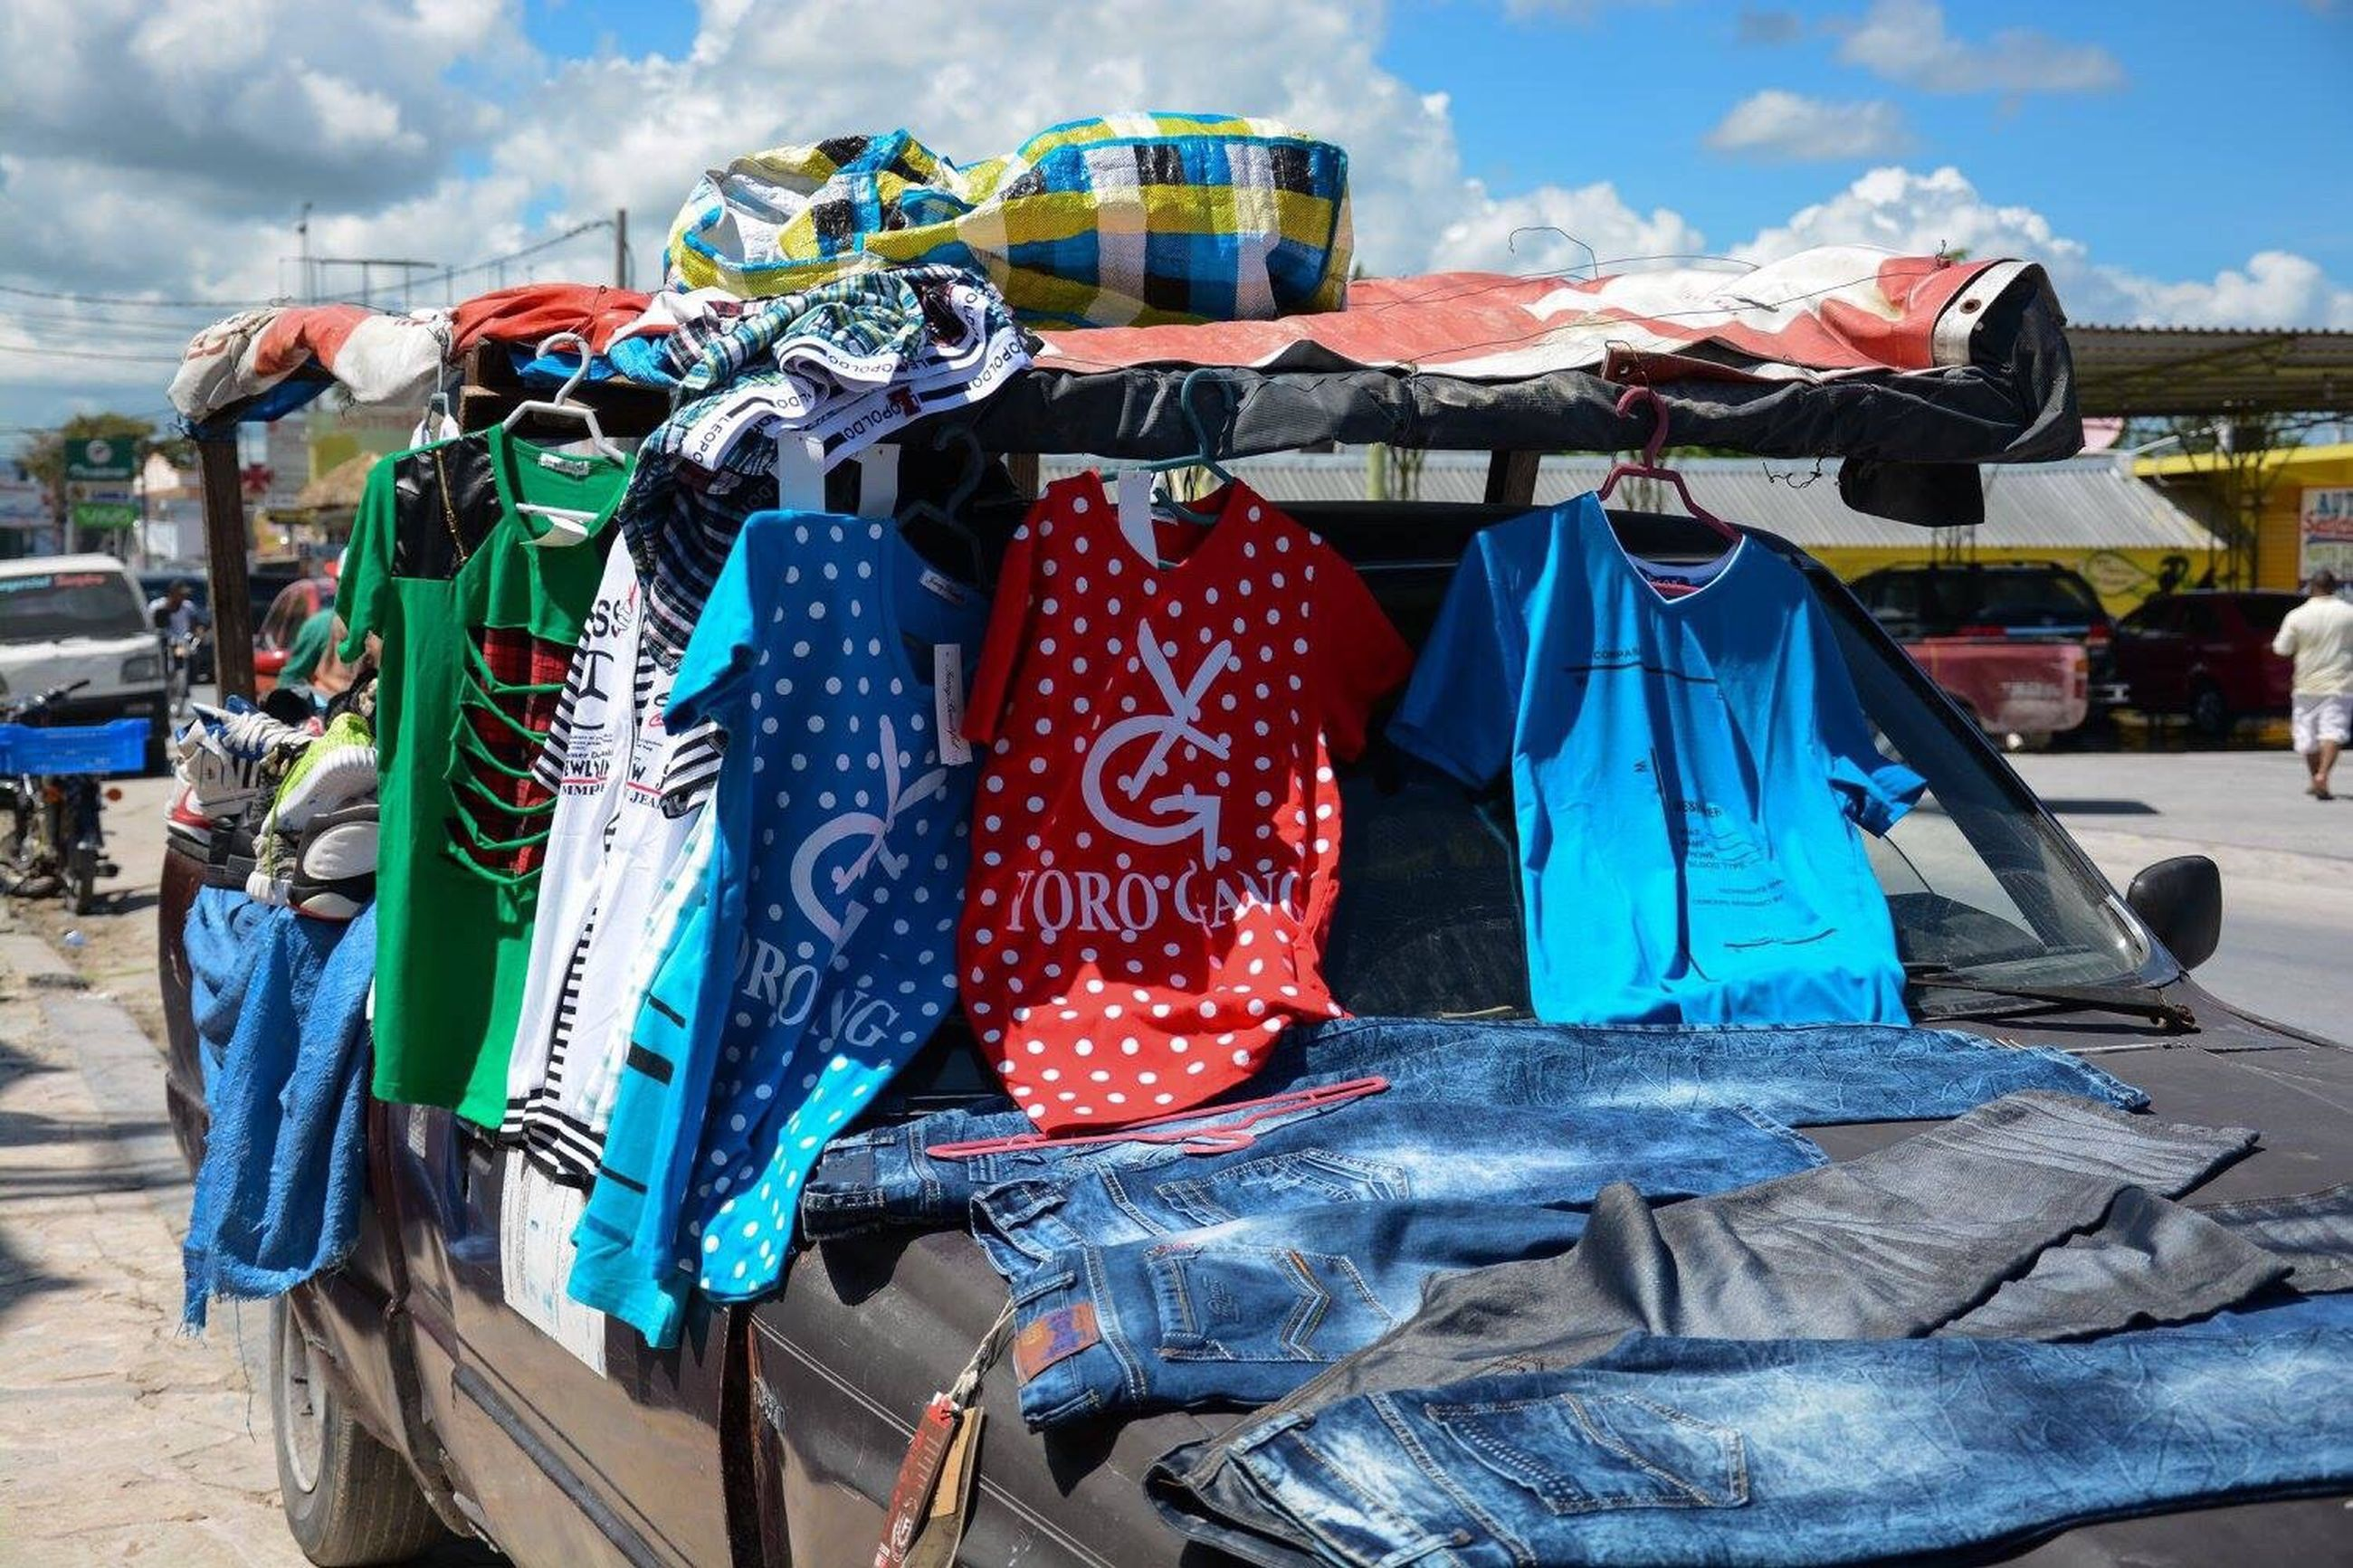 hanging, sky, multi colored, city, outdoors, variation, cloud - sky, choice, market stall, day, no people